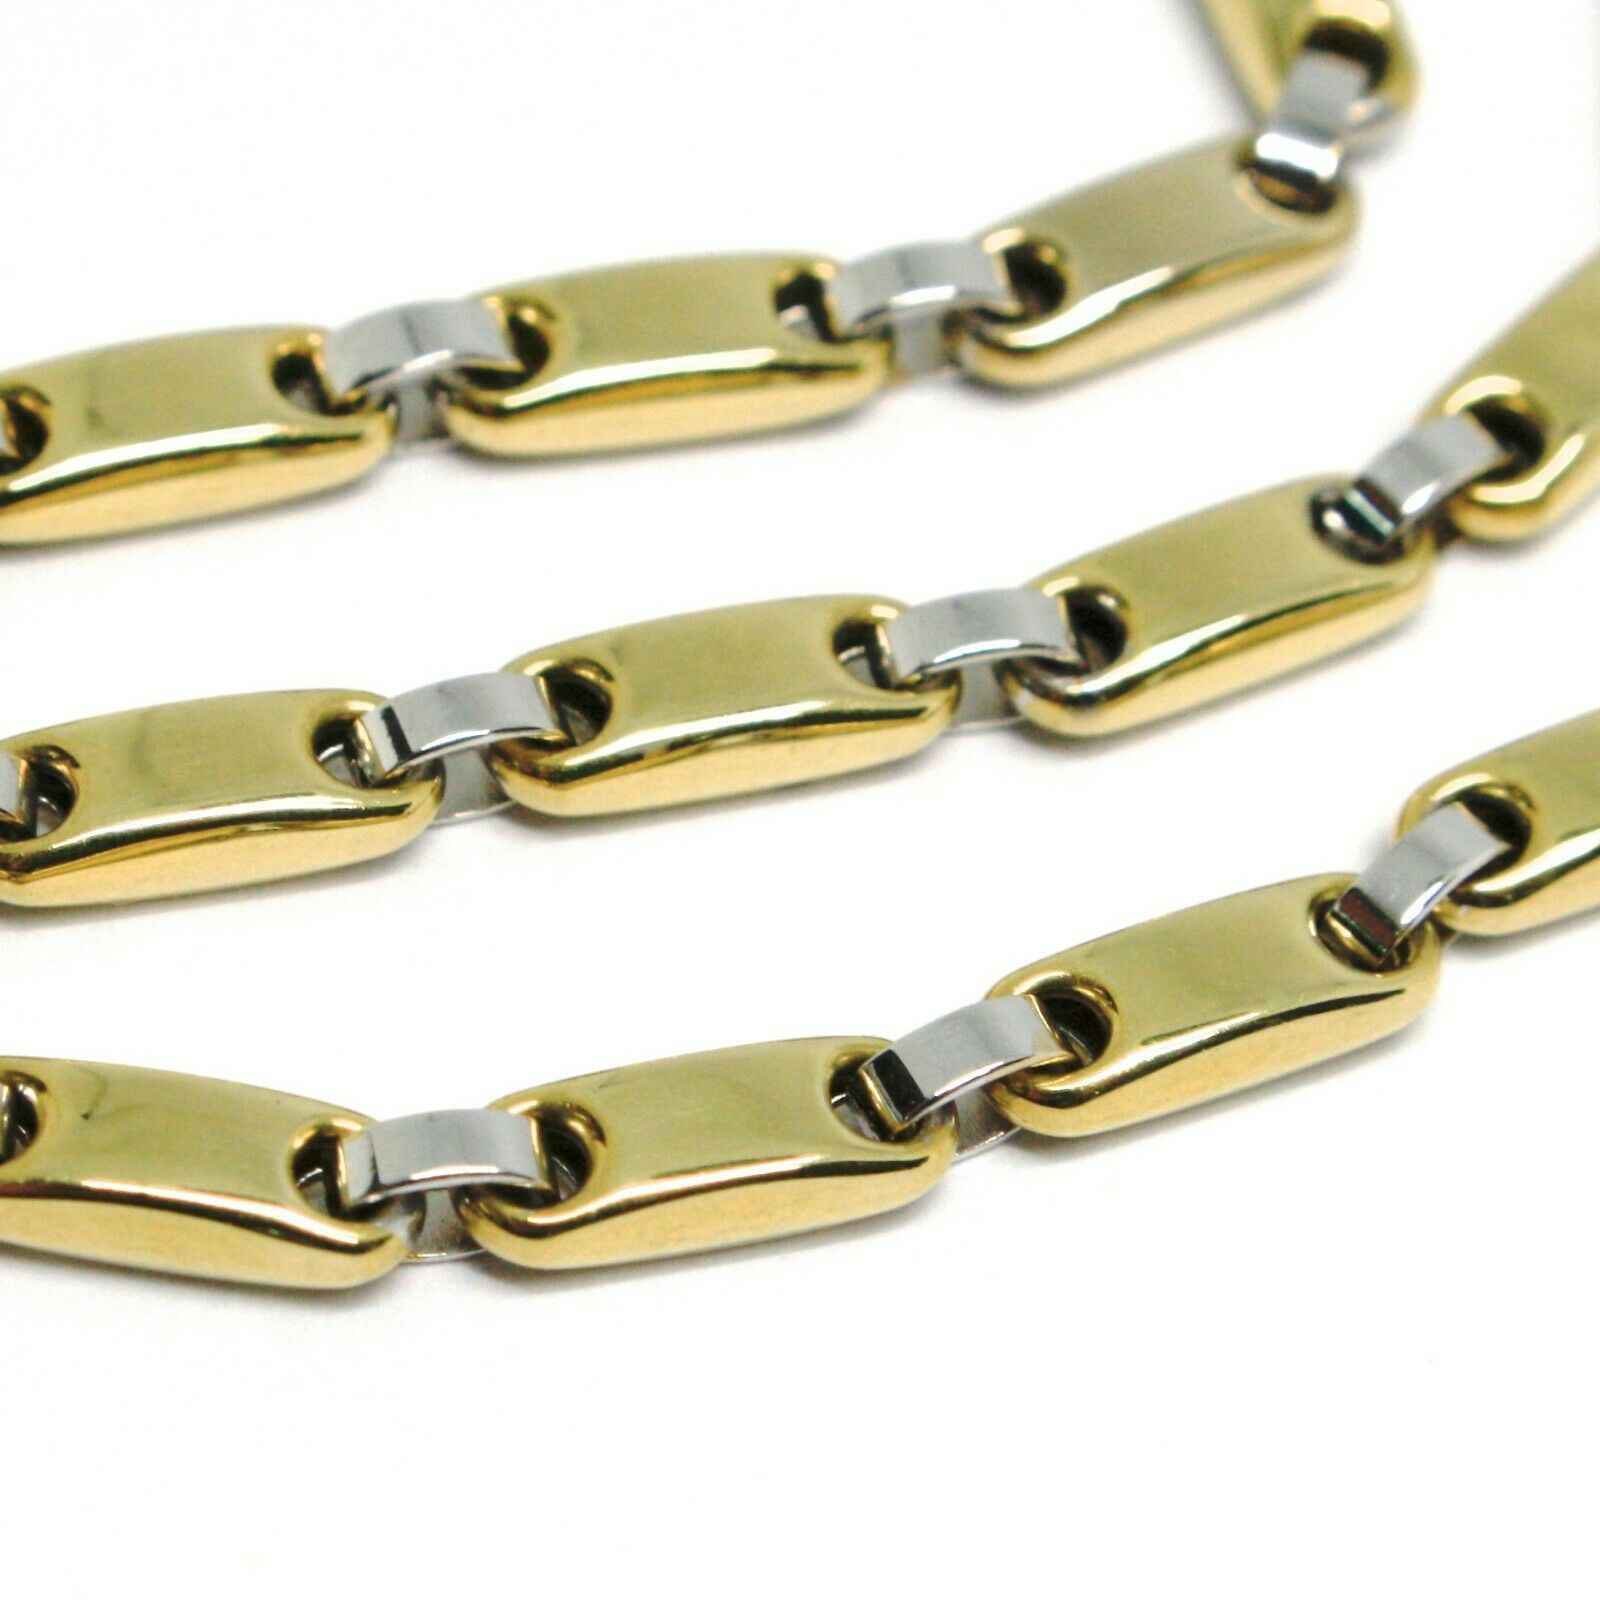 18K YELLOW WHITE GOLD CHAIN, TUBE AND OVAL ALTERNATE LINK, 20 INCHES, ITALY MADE